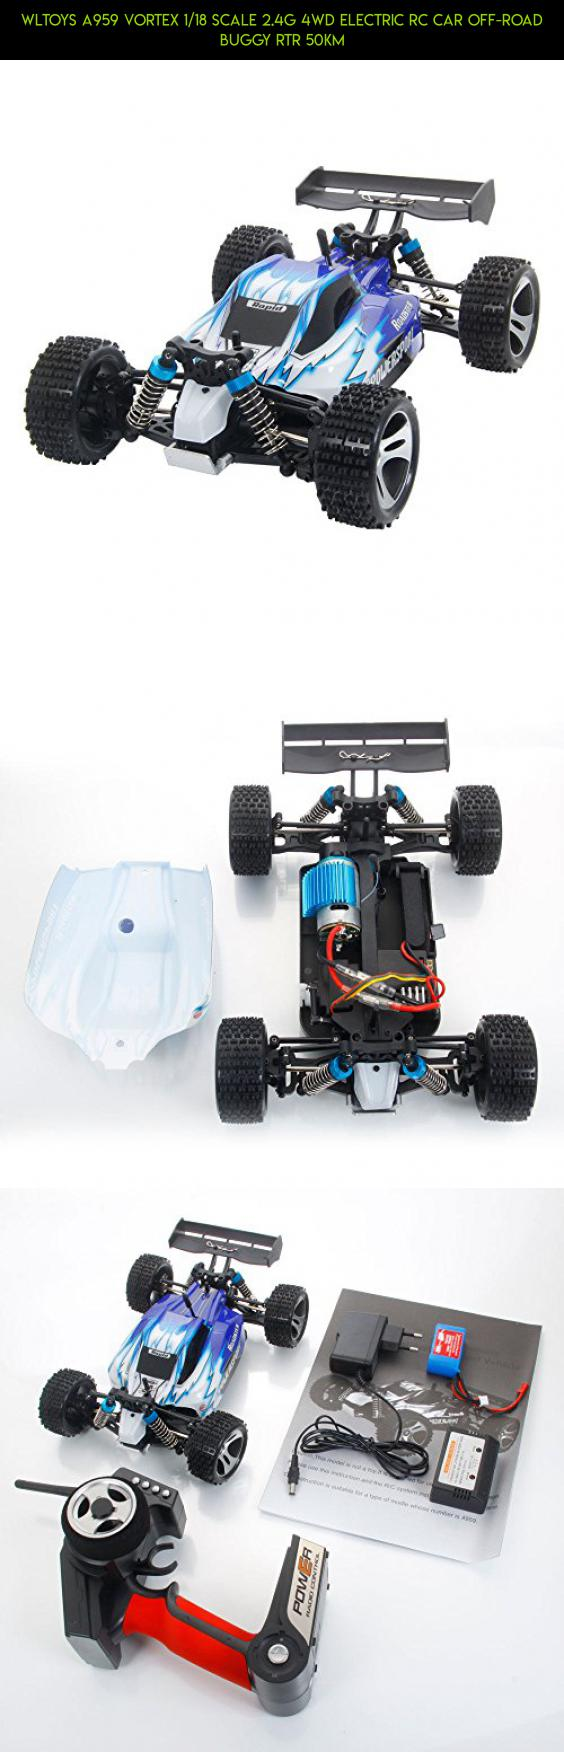 Wltoys A959 Vortex 1 18 Scale 2 4g 4wd Electric Rc Car Off Road